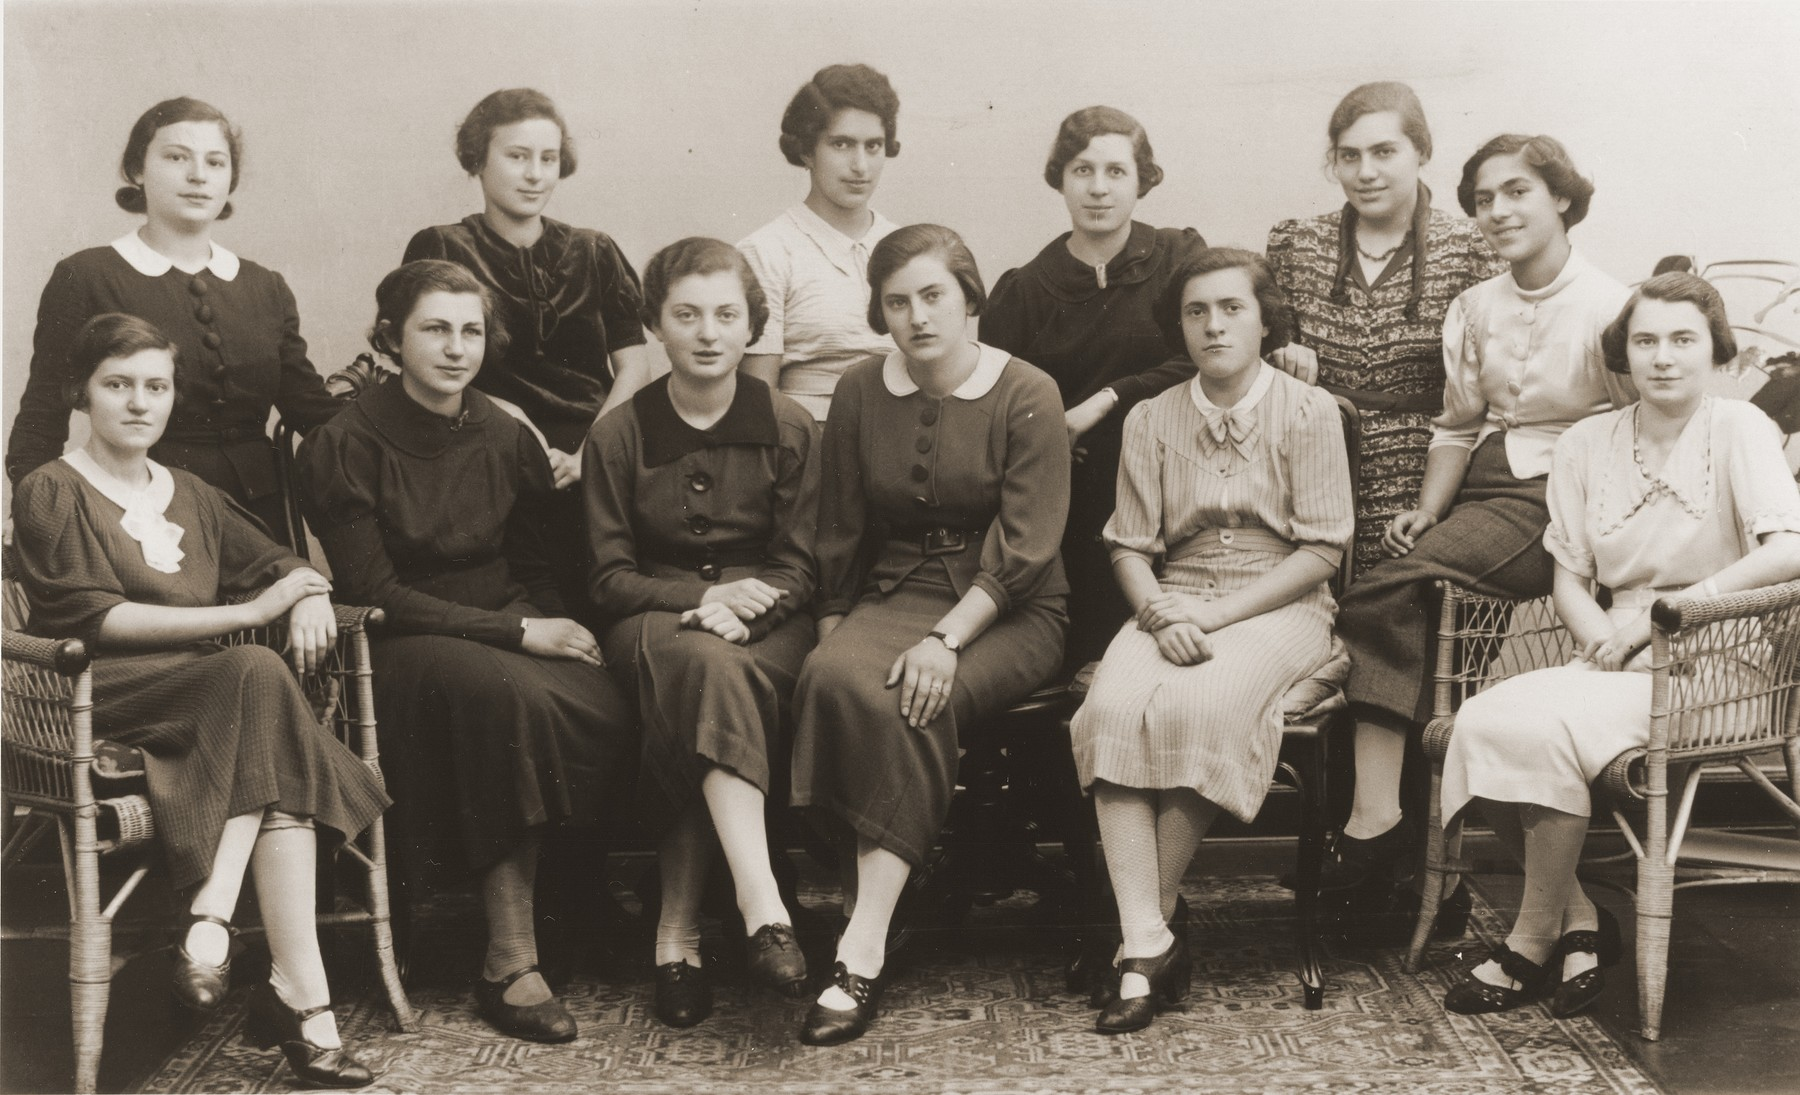 Group portrait of girls in the Nuremberg chapter of the Ezra youth movement.    Among those pictured are Hanna Feuchtwanger, ? Frankfort, Margot Korngold, Erna Metzger, Trudel Farntrog, Rosl Neumann, Tepi Silber, Hanna Metzger and Lotte Abusch.  .